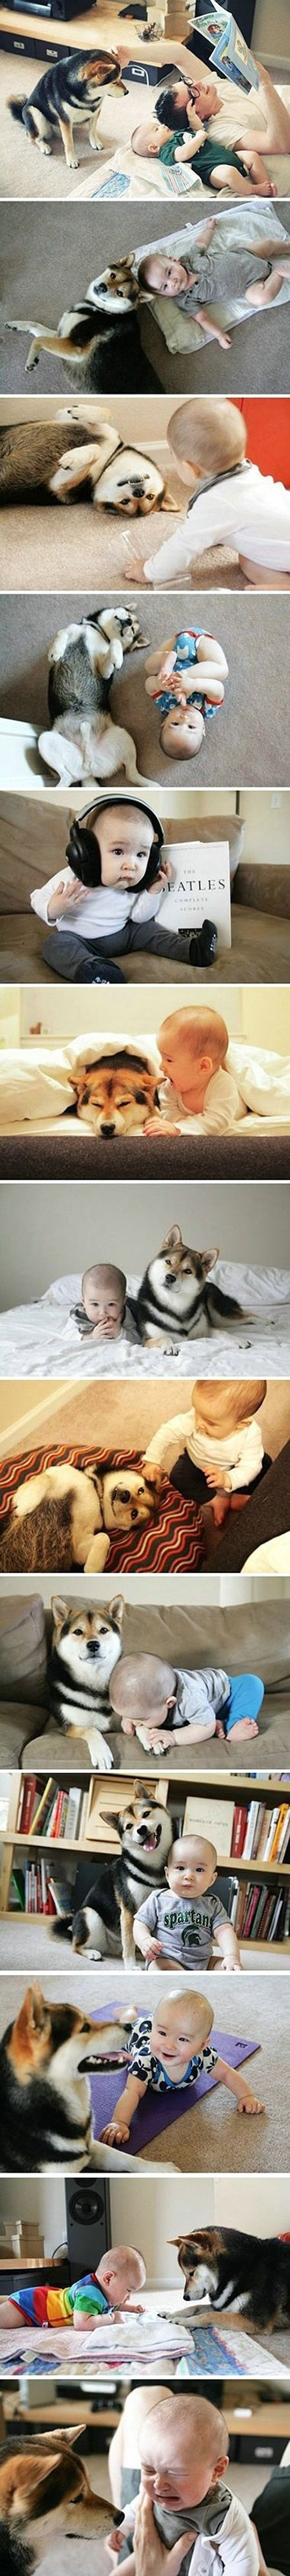 This dog really loves this baby